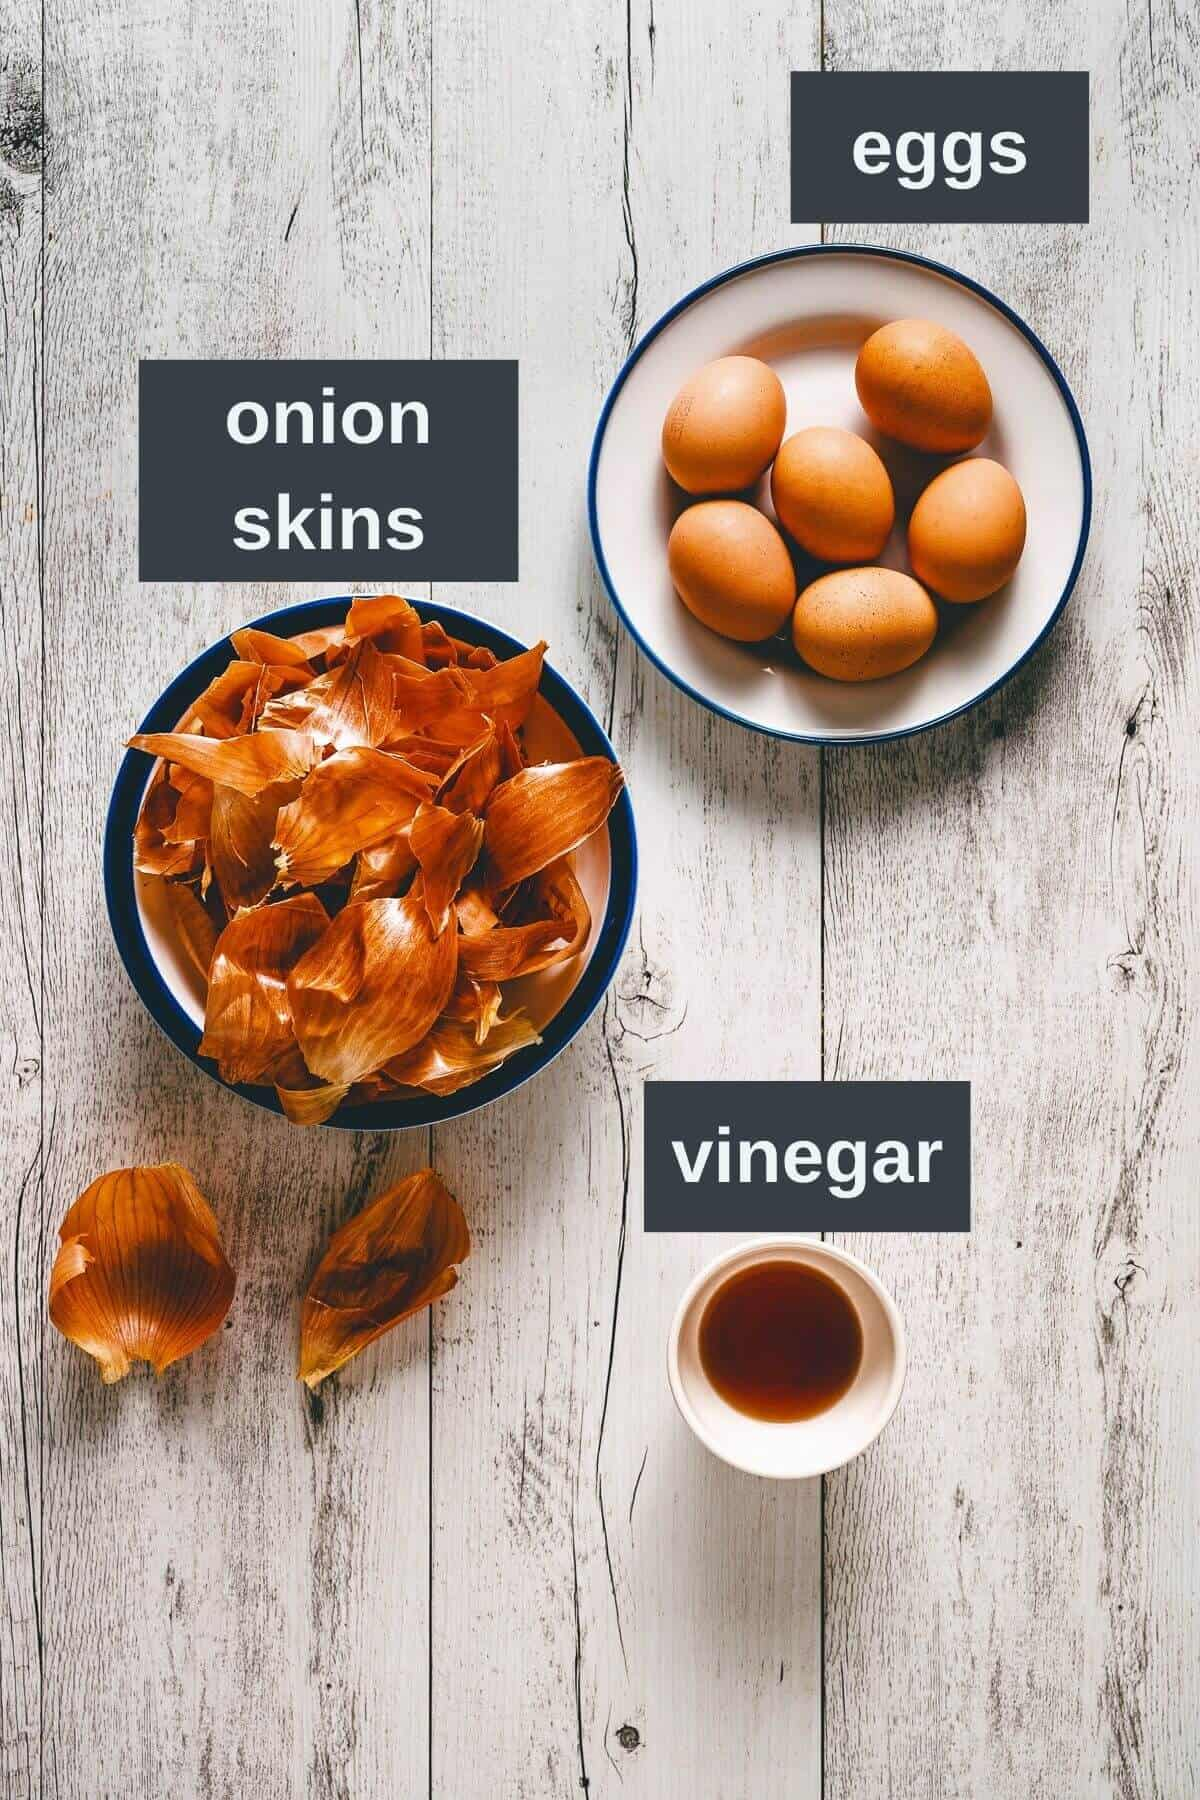 a white wooden table with a bowl filled with uncooked eggs, a bowl of onion skins and small bowl of vinegar